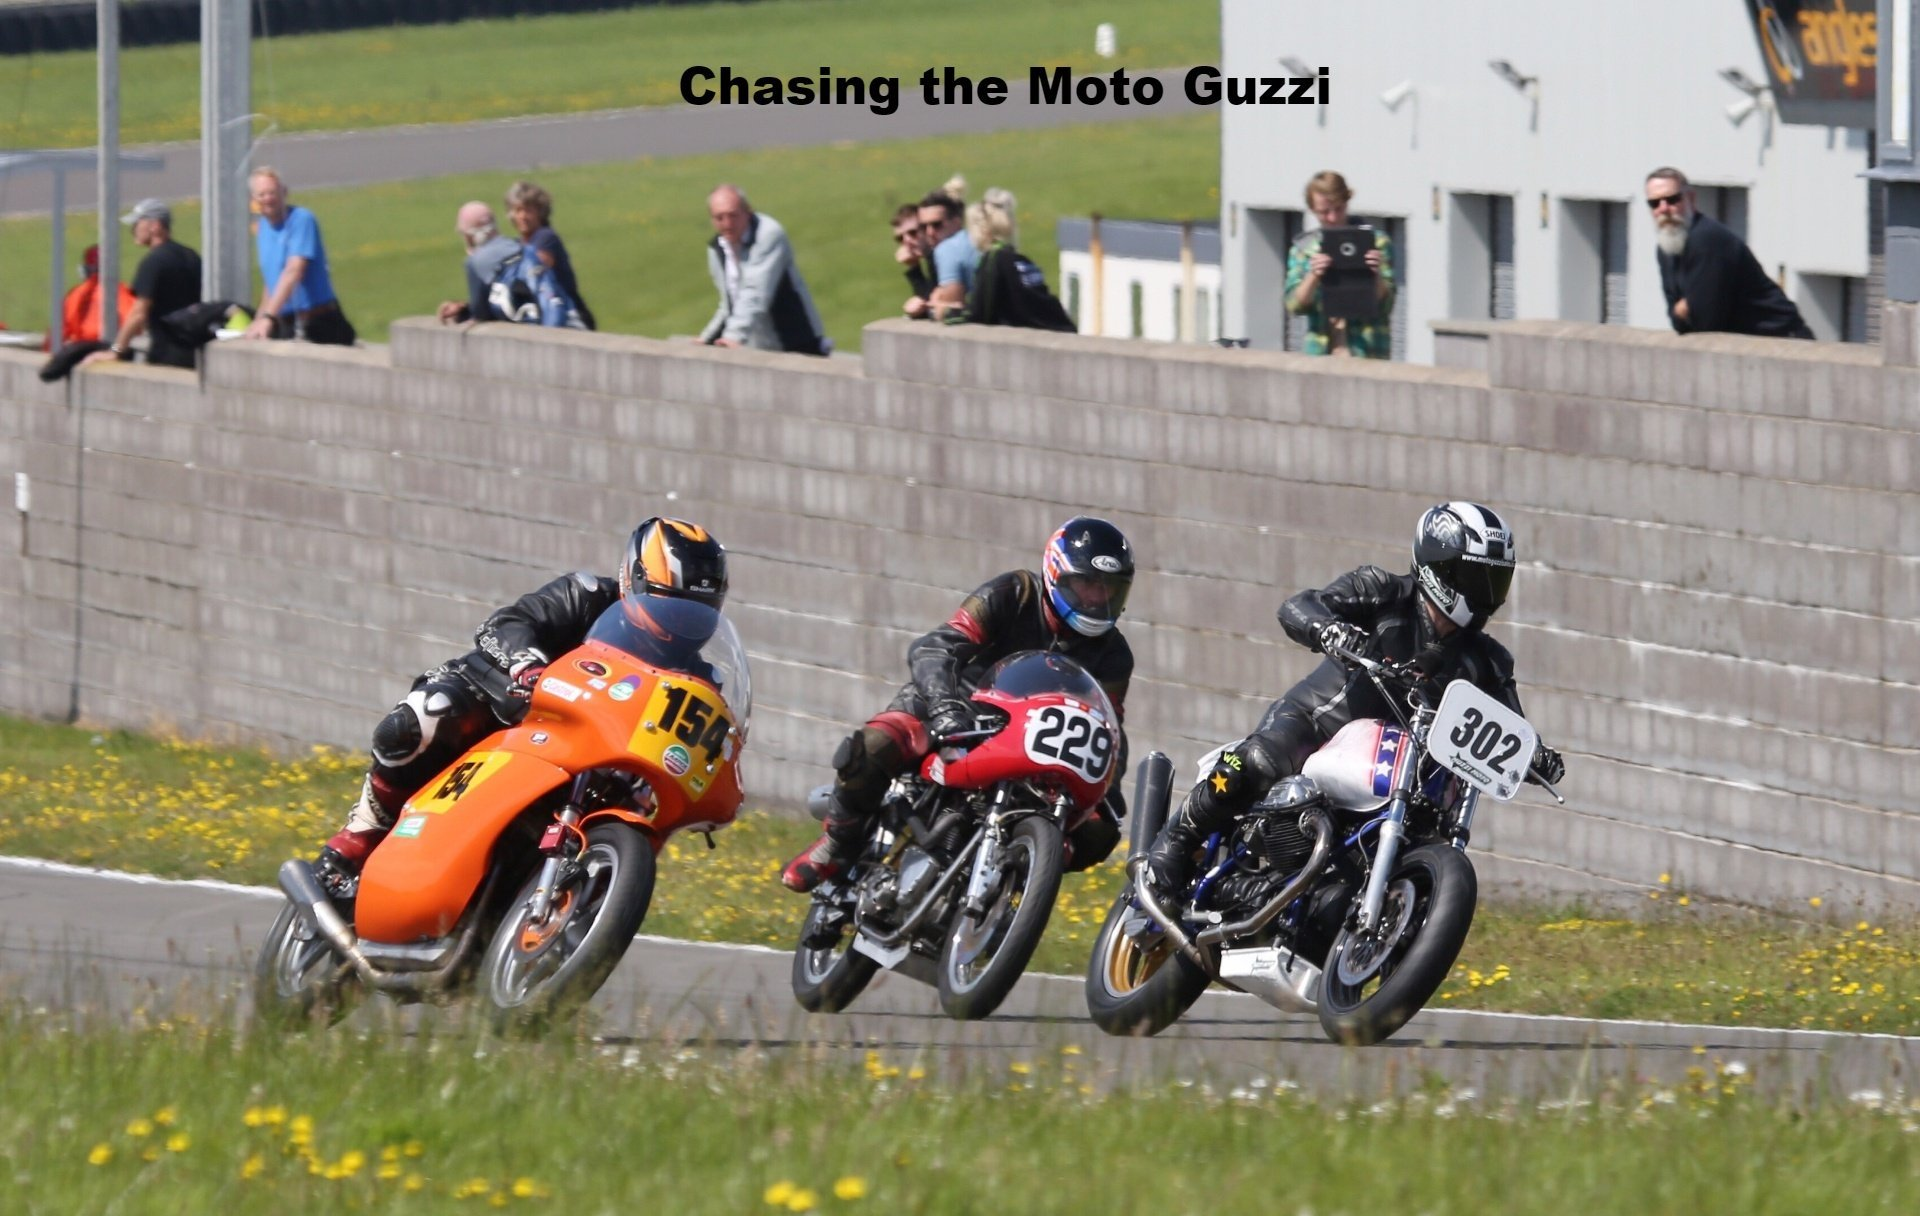 Chasing the Guzzi Le Mans